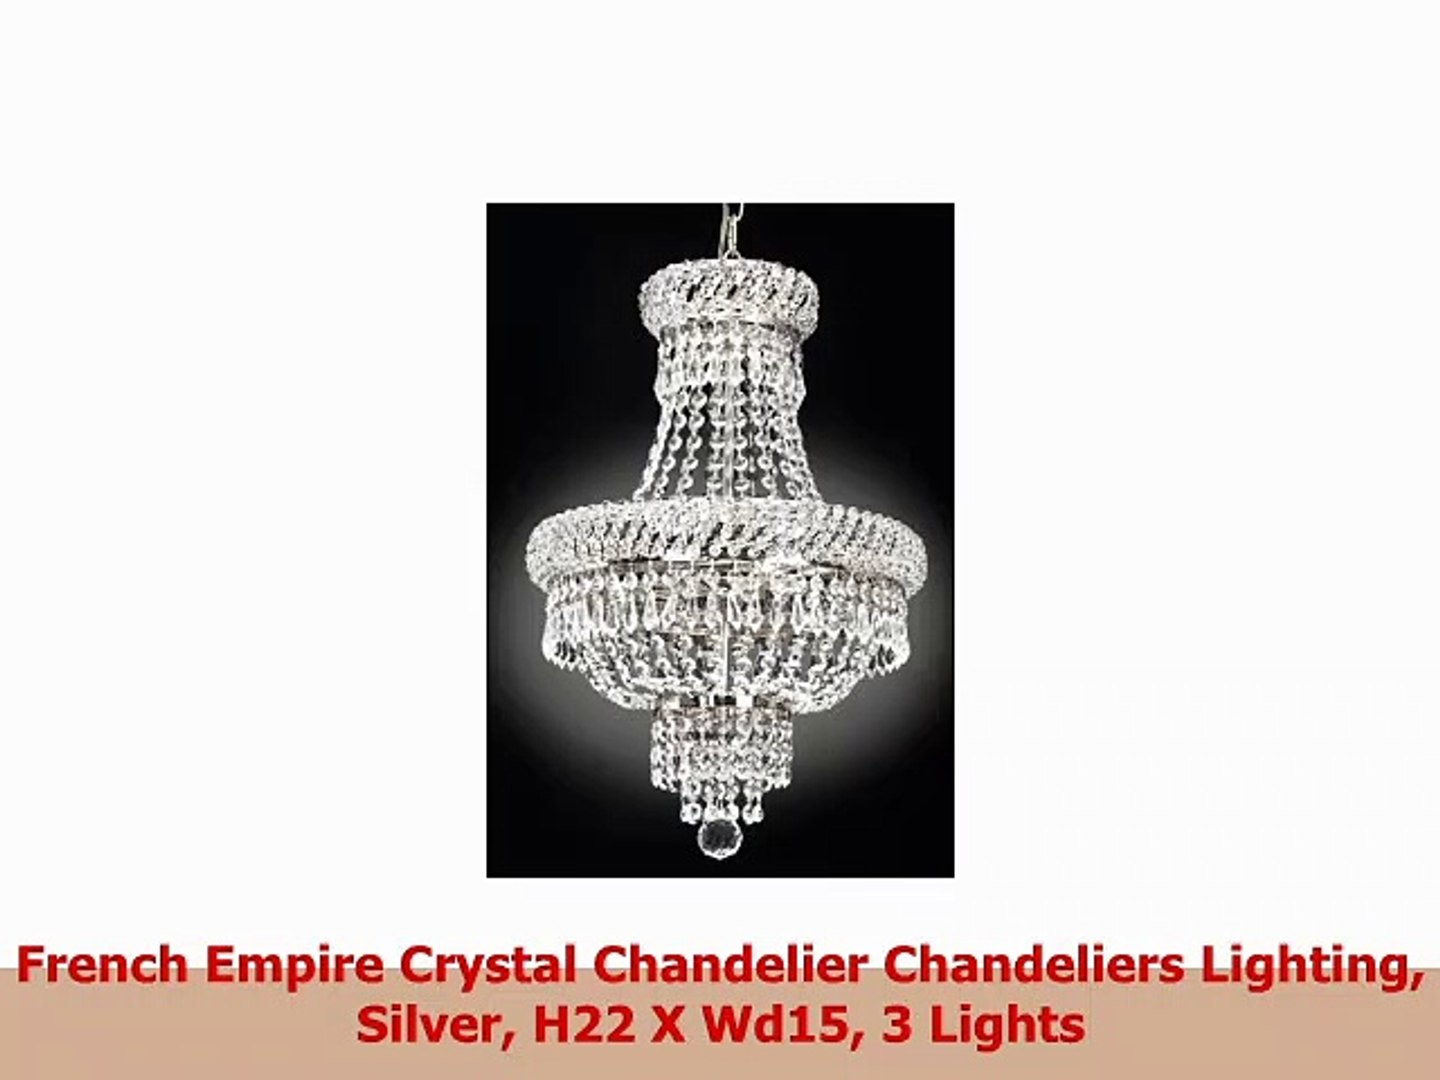 French Empire Crystal Chandelier Chandeliers Lighting Silver